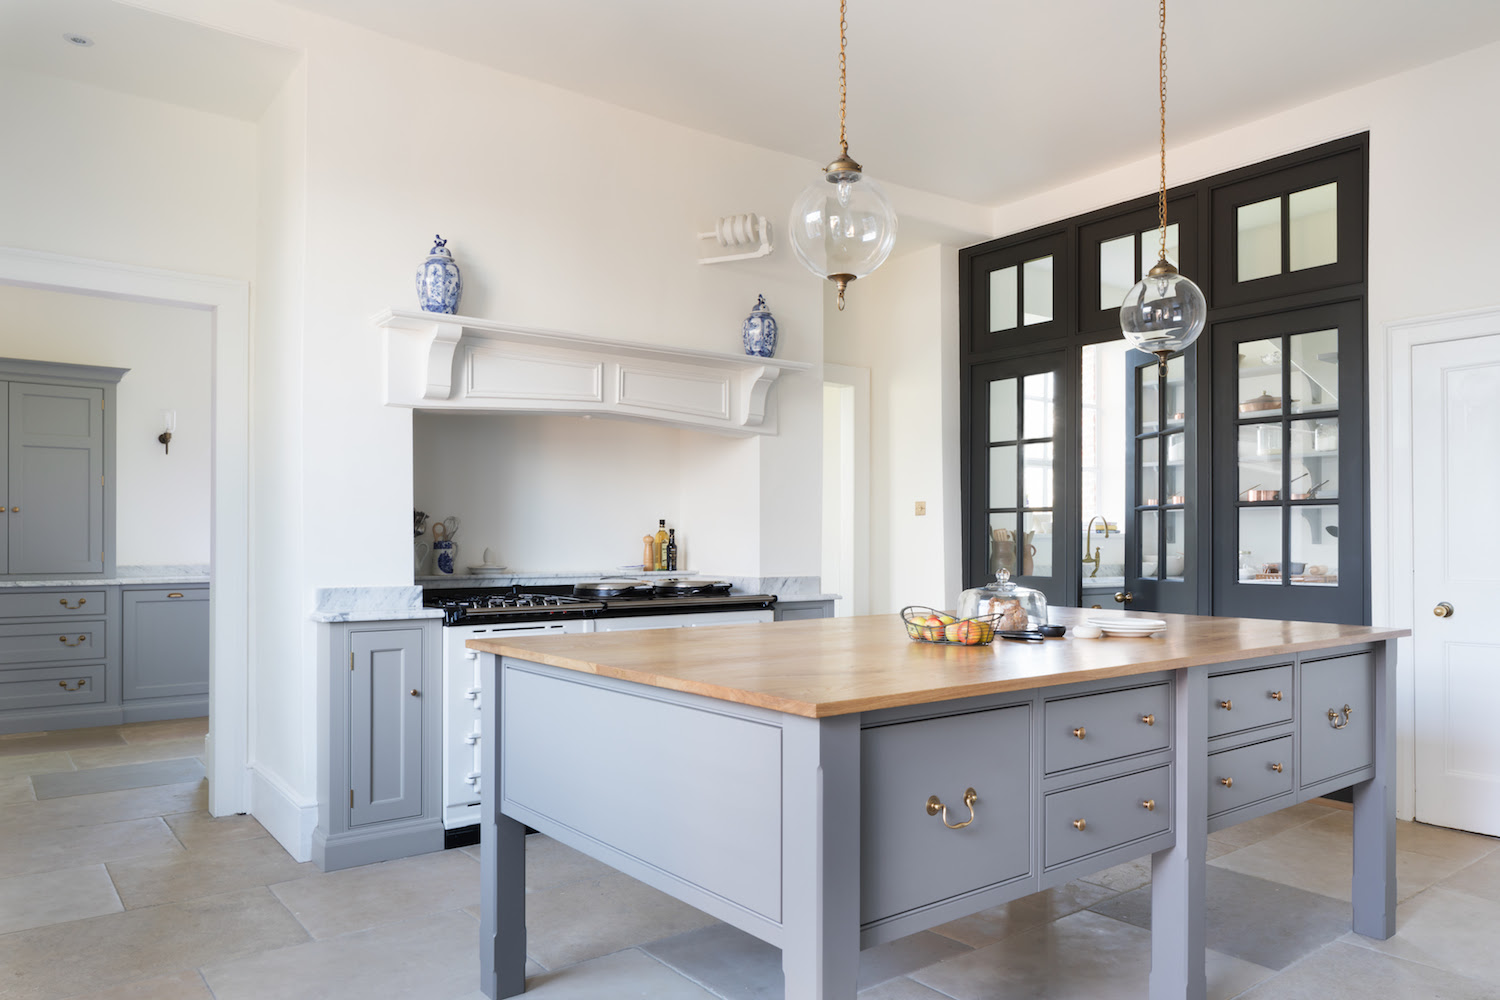 Georgian Kitchens: Get The Look: Symmetry on Modern Country Style